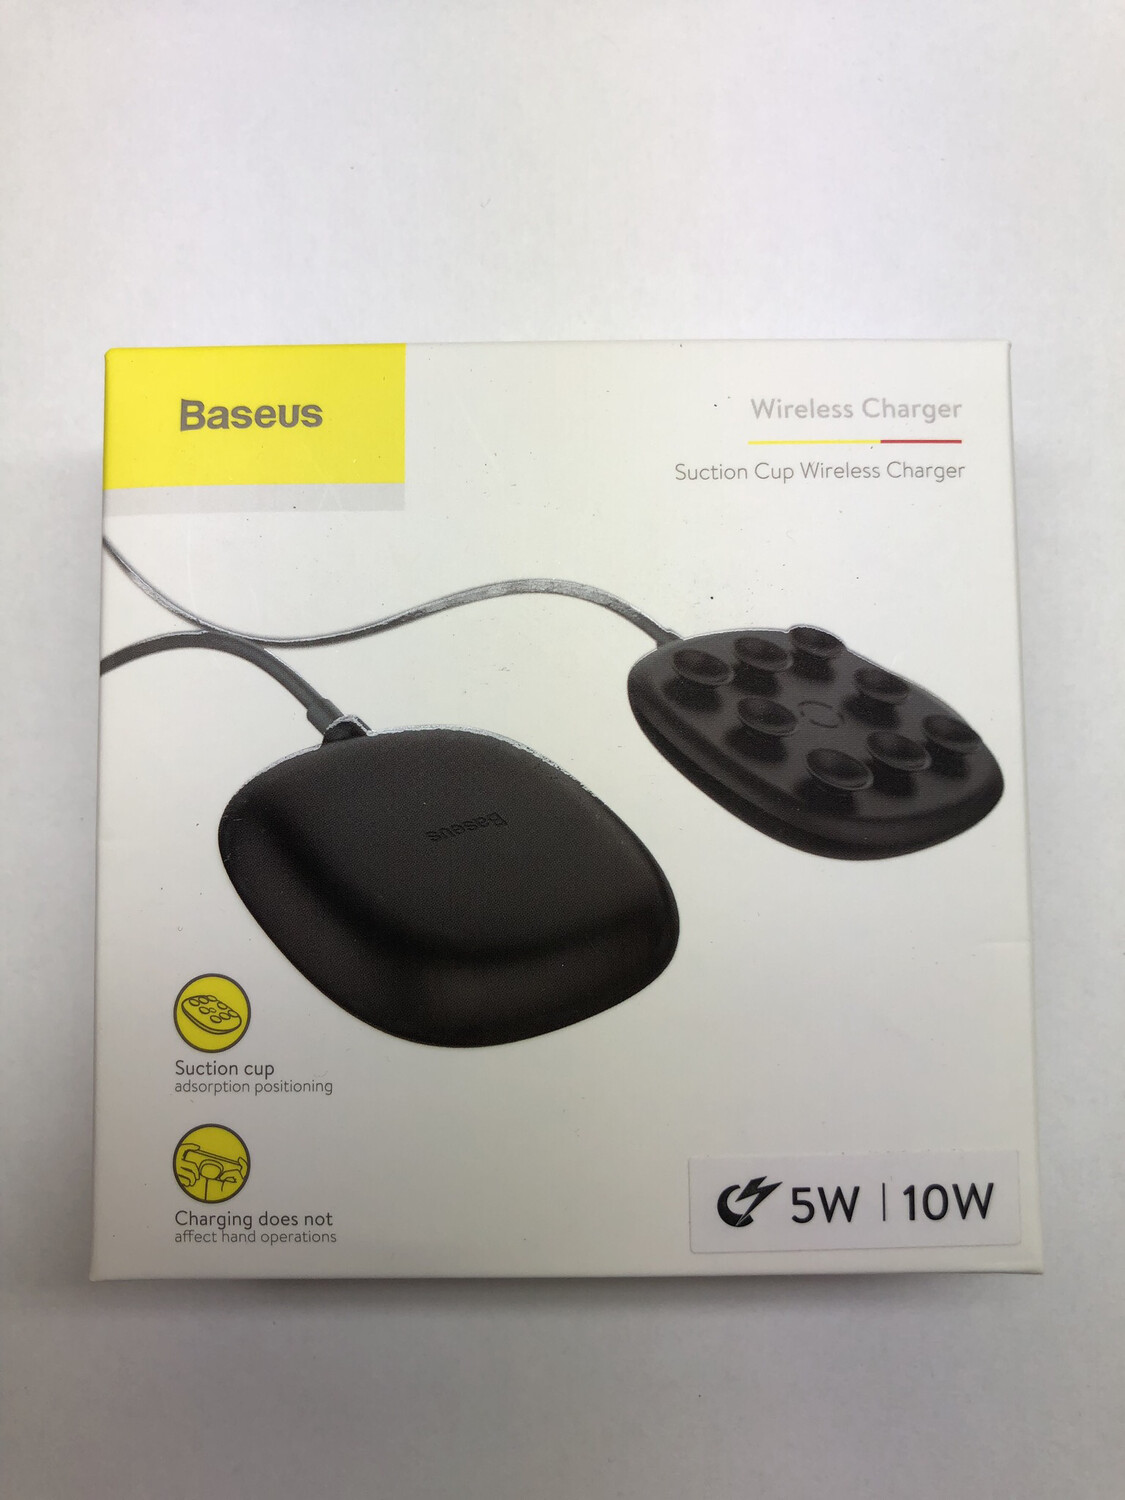 Baseus Wireless Charger (Suction Cup Wireless Charger)